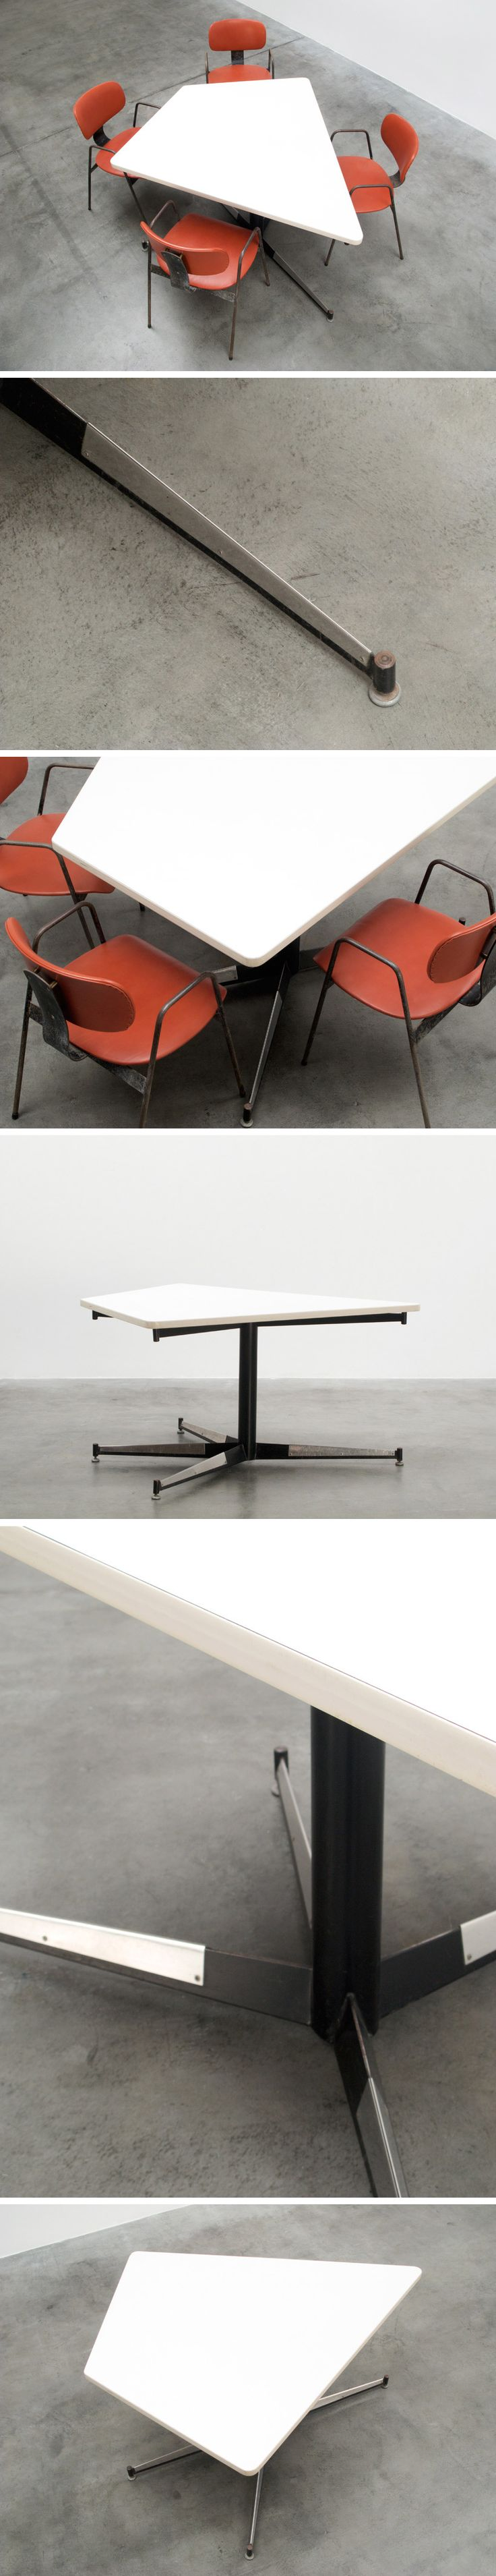 51e903ccdf36b3bde397939c8a9402db--dinning-table Impressionnant De Table Transformable Concept